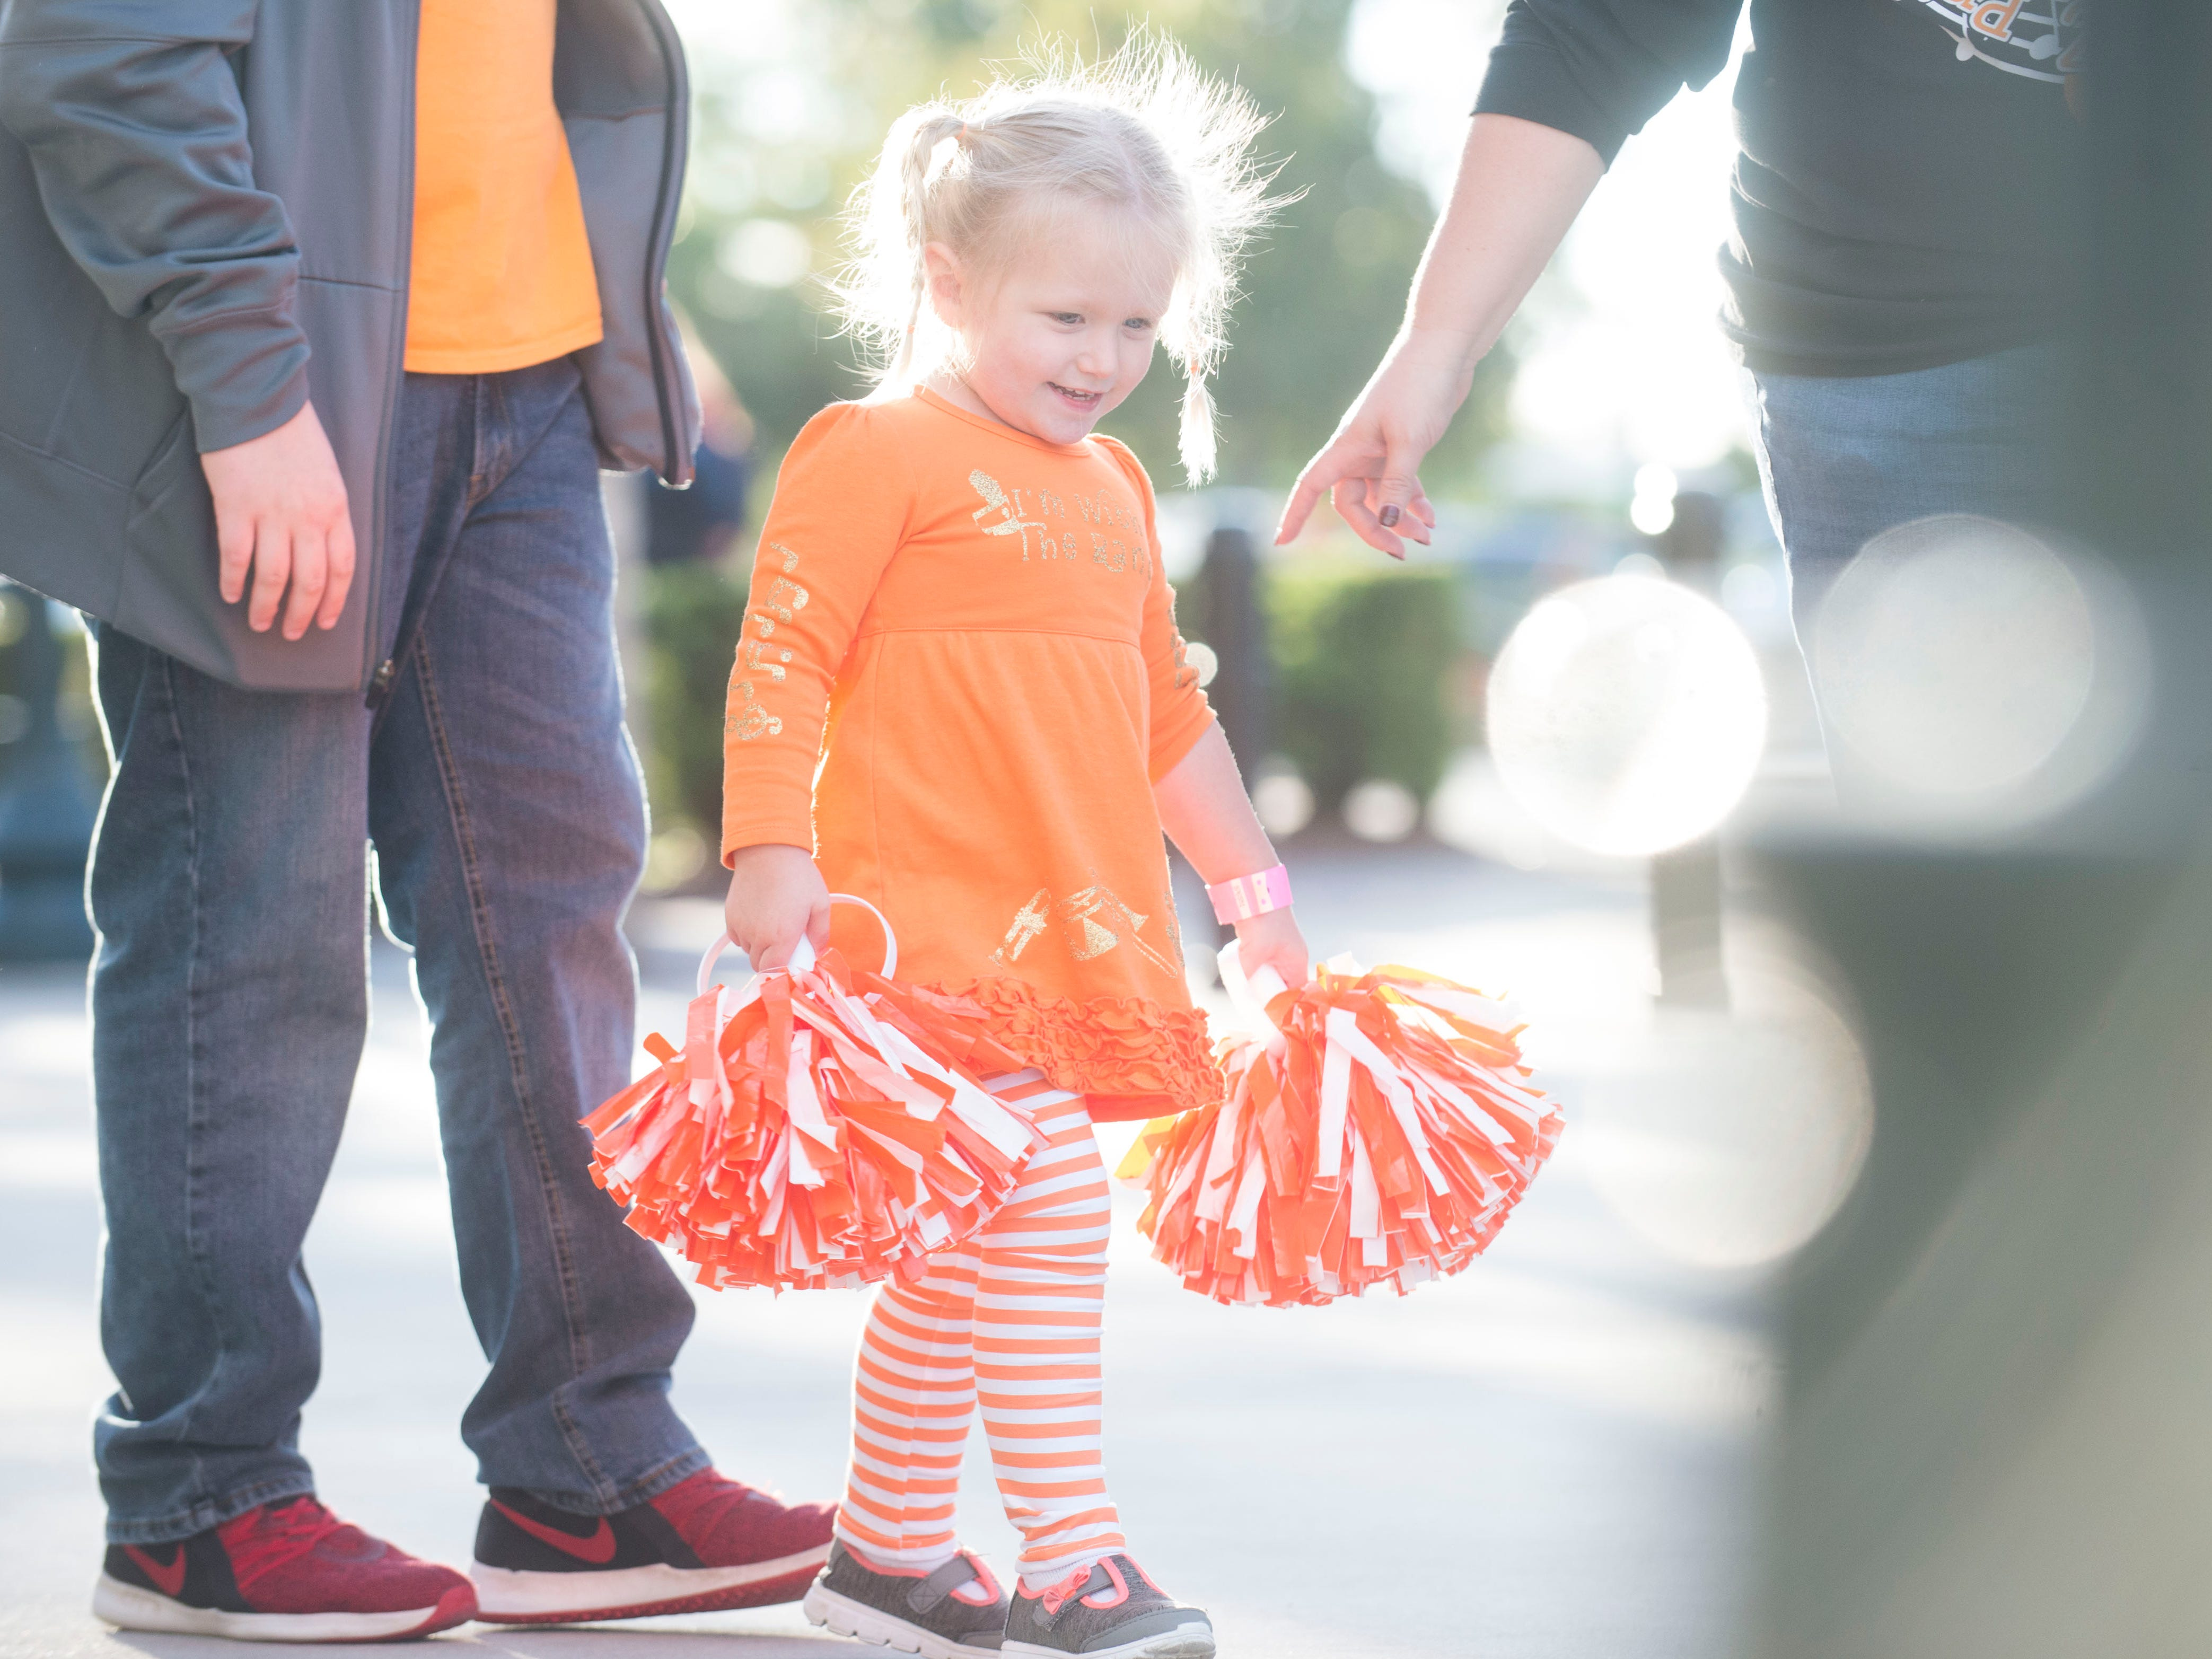 Taylor Caldwell, 2, of Brunswick, Ga. walks around before a game between Tennessee and South Carolina at Williams-Brice Stadium Saturday, Oct. 27, 2018. Taylor's sister is in the Pride of the Southland Band.